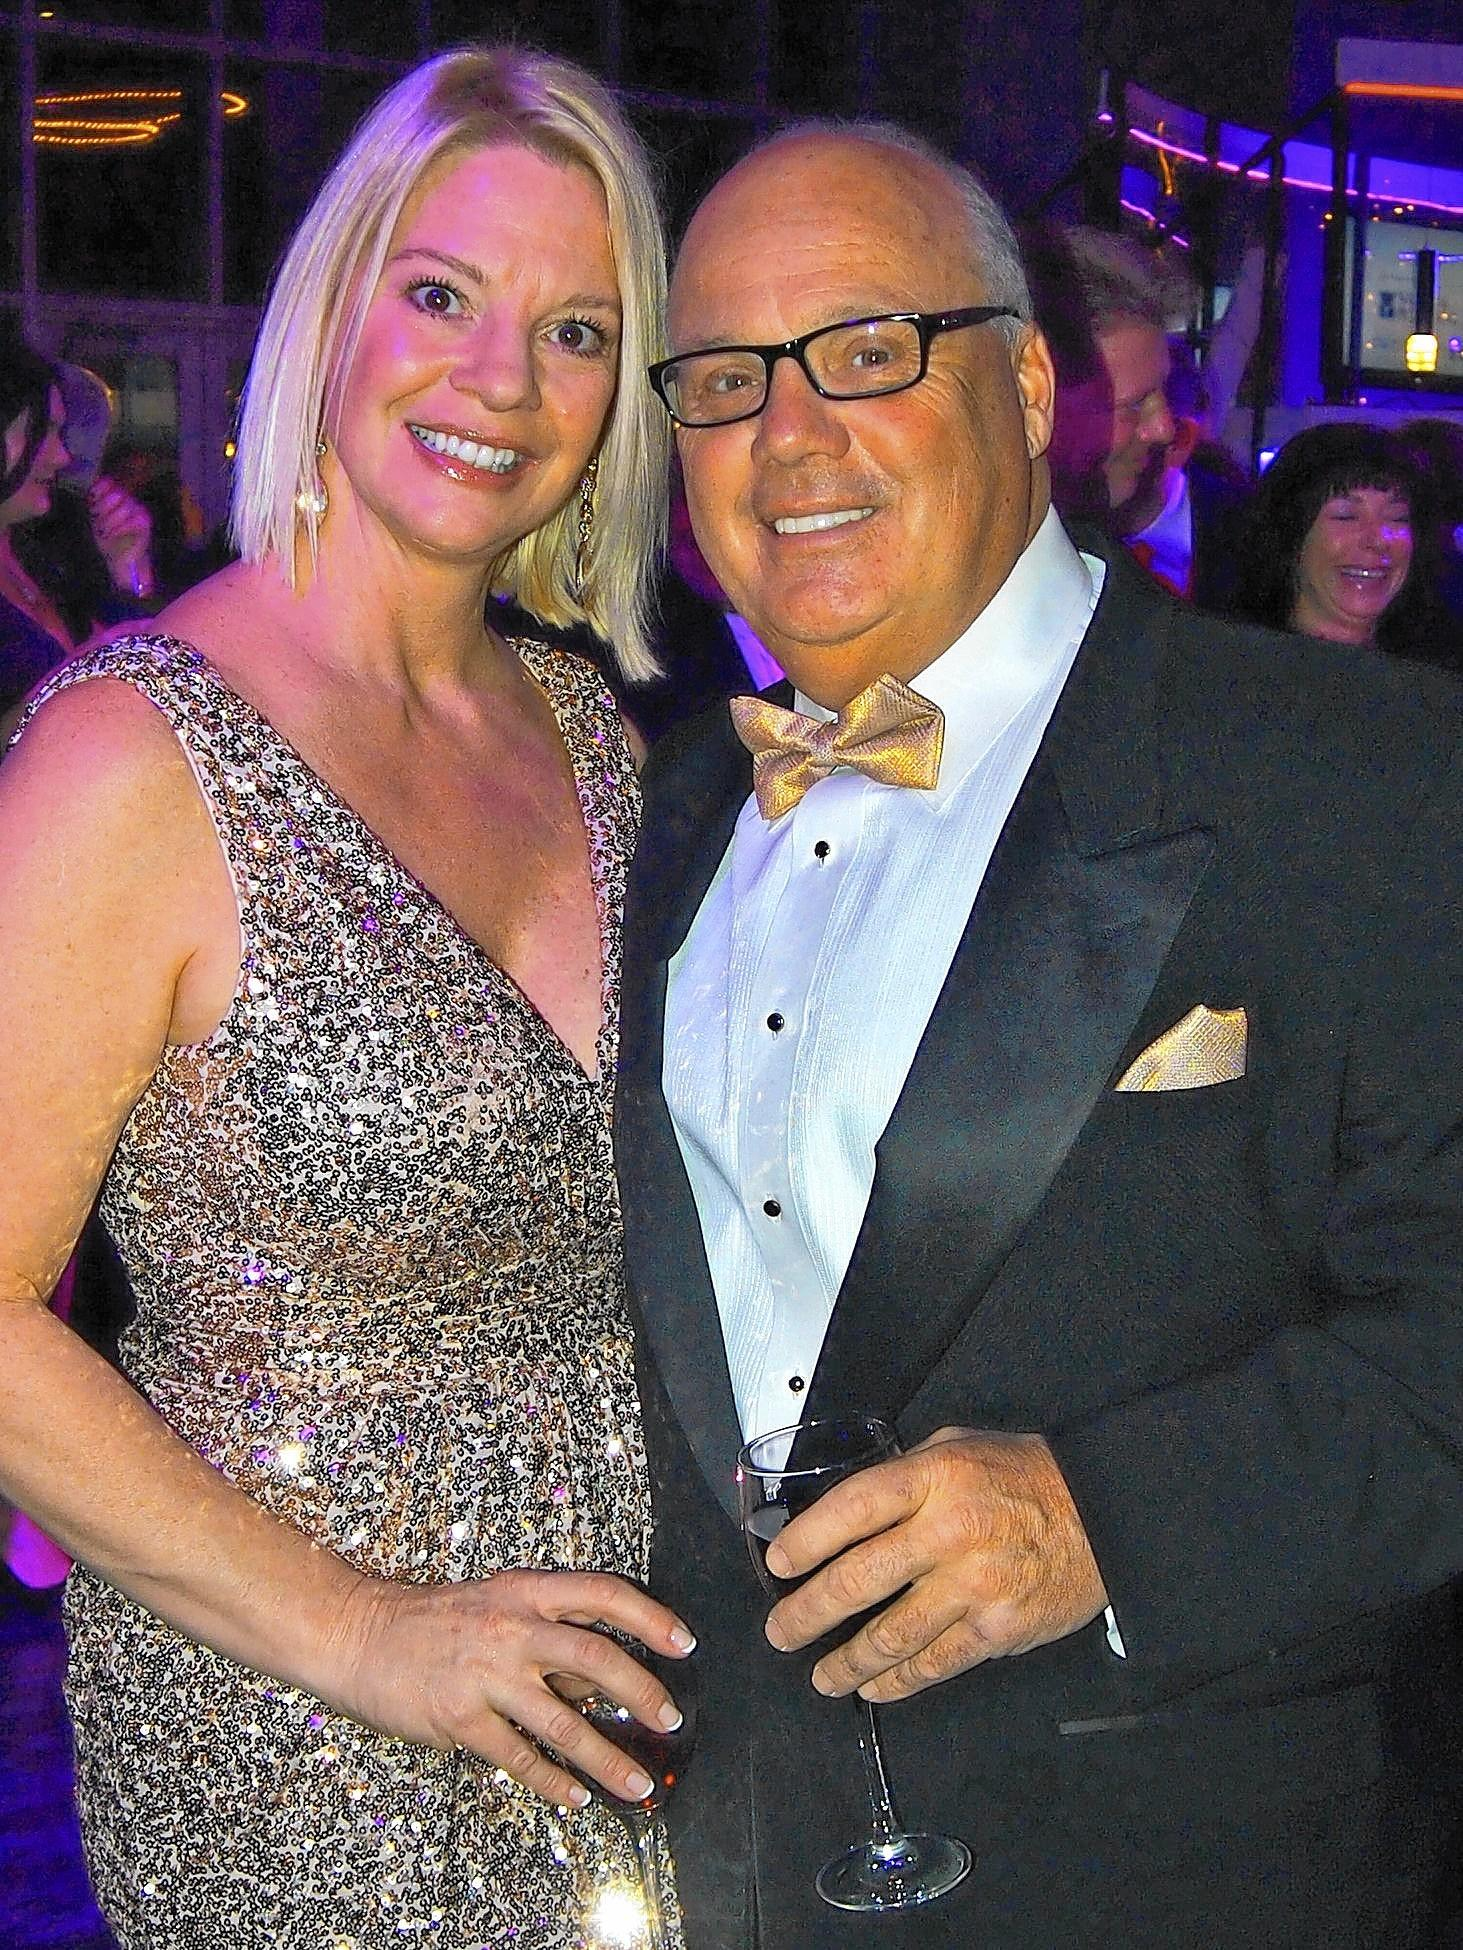 Tony Iannelli, president and CEO of the Greater Lehigh Valley Chamber of Commerce, was joined by his fiancee Wendy Perryat the 25th Annual Snow Ball Feb. 8 at the Sands Bethlehem Event Center.